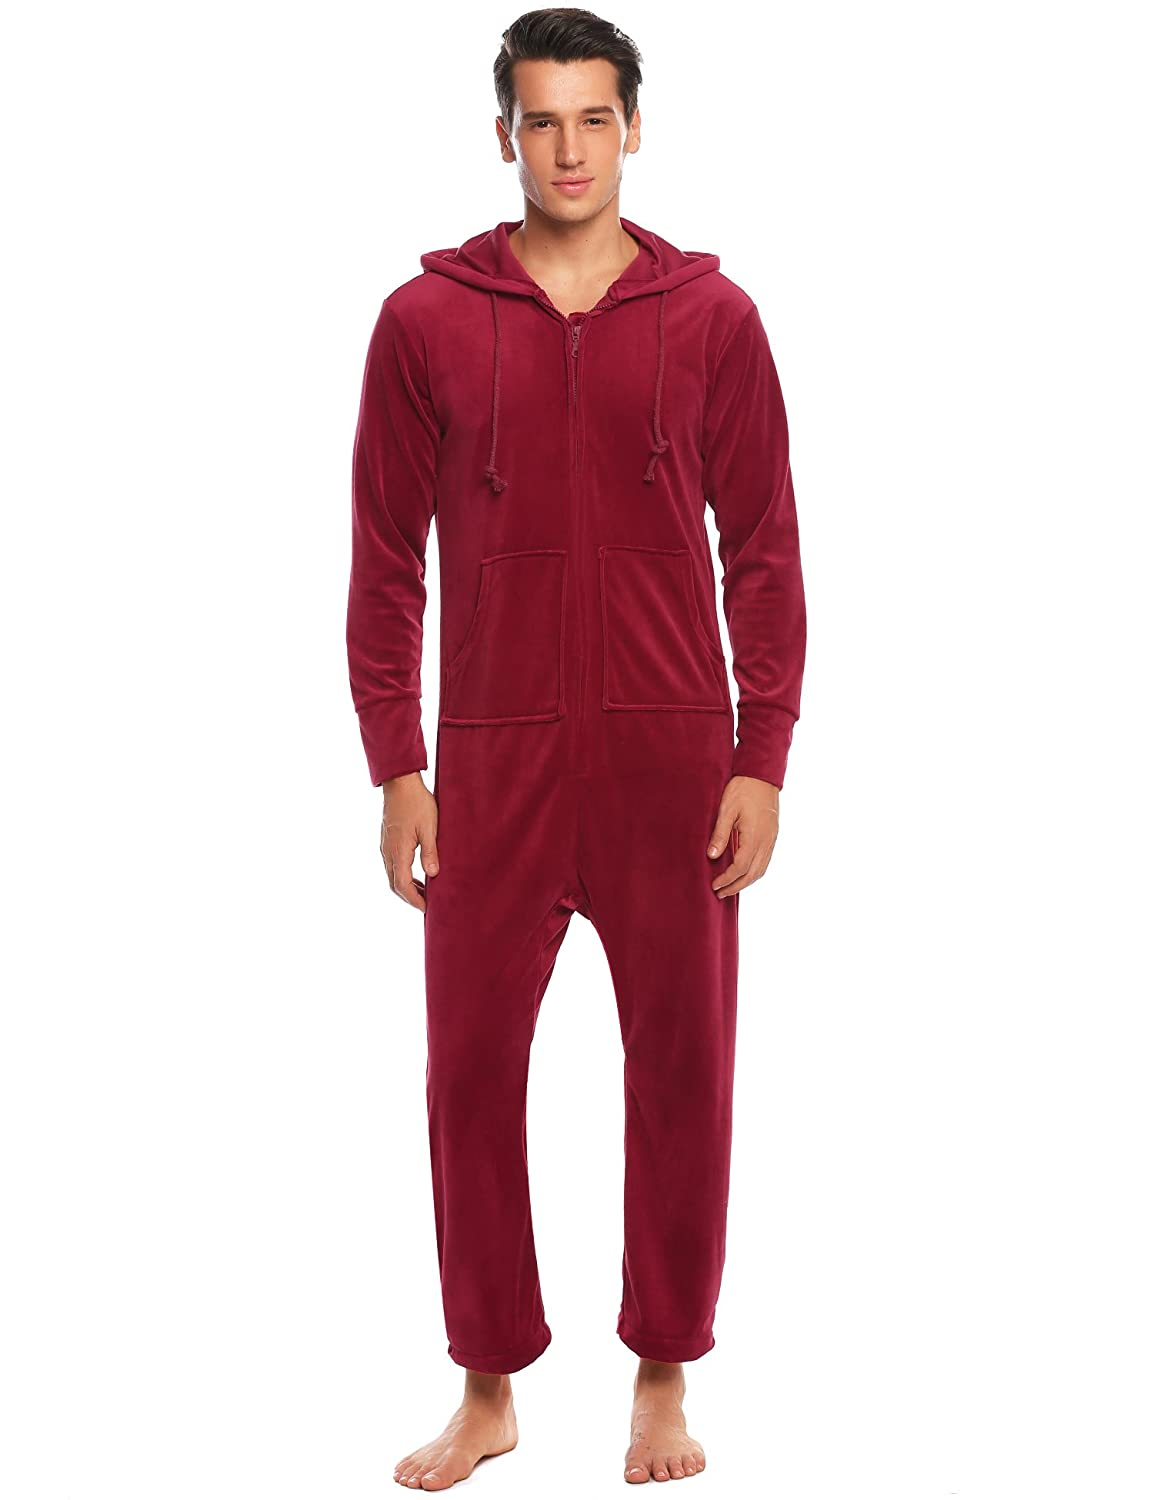 29c8ea5341 Ekouaer Mens Coral Fleece Onesie Long Sleeve Hooded Footed Jumpsuit Pajamas  One Piece S-XXL at Amazon Men s Clothing store